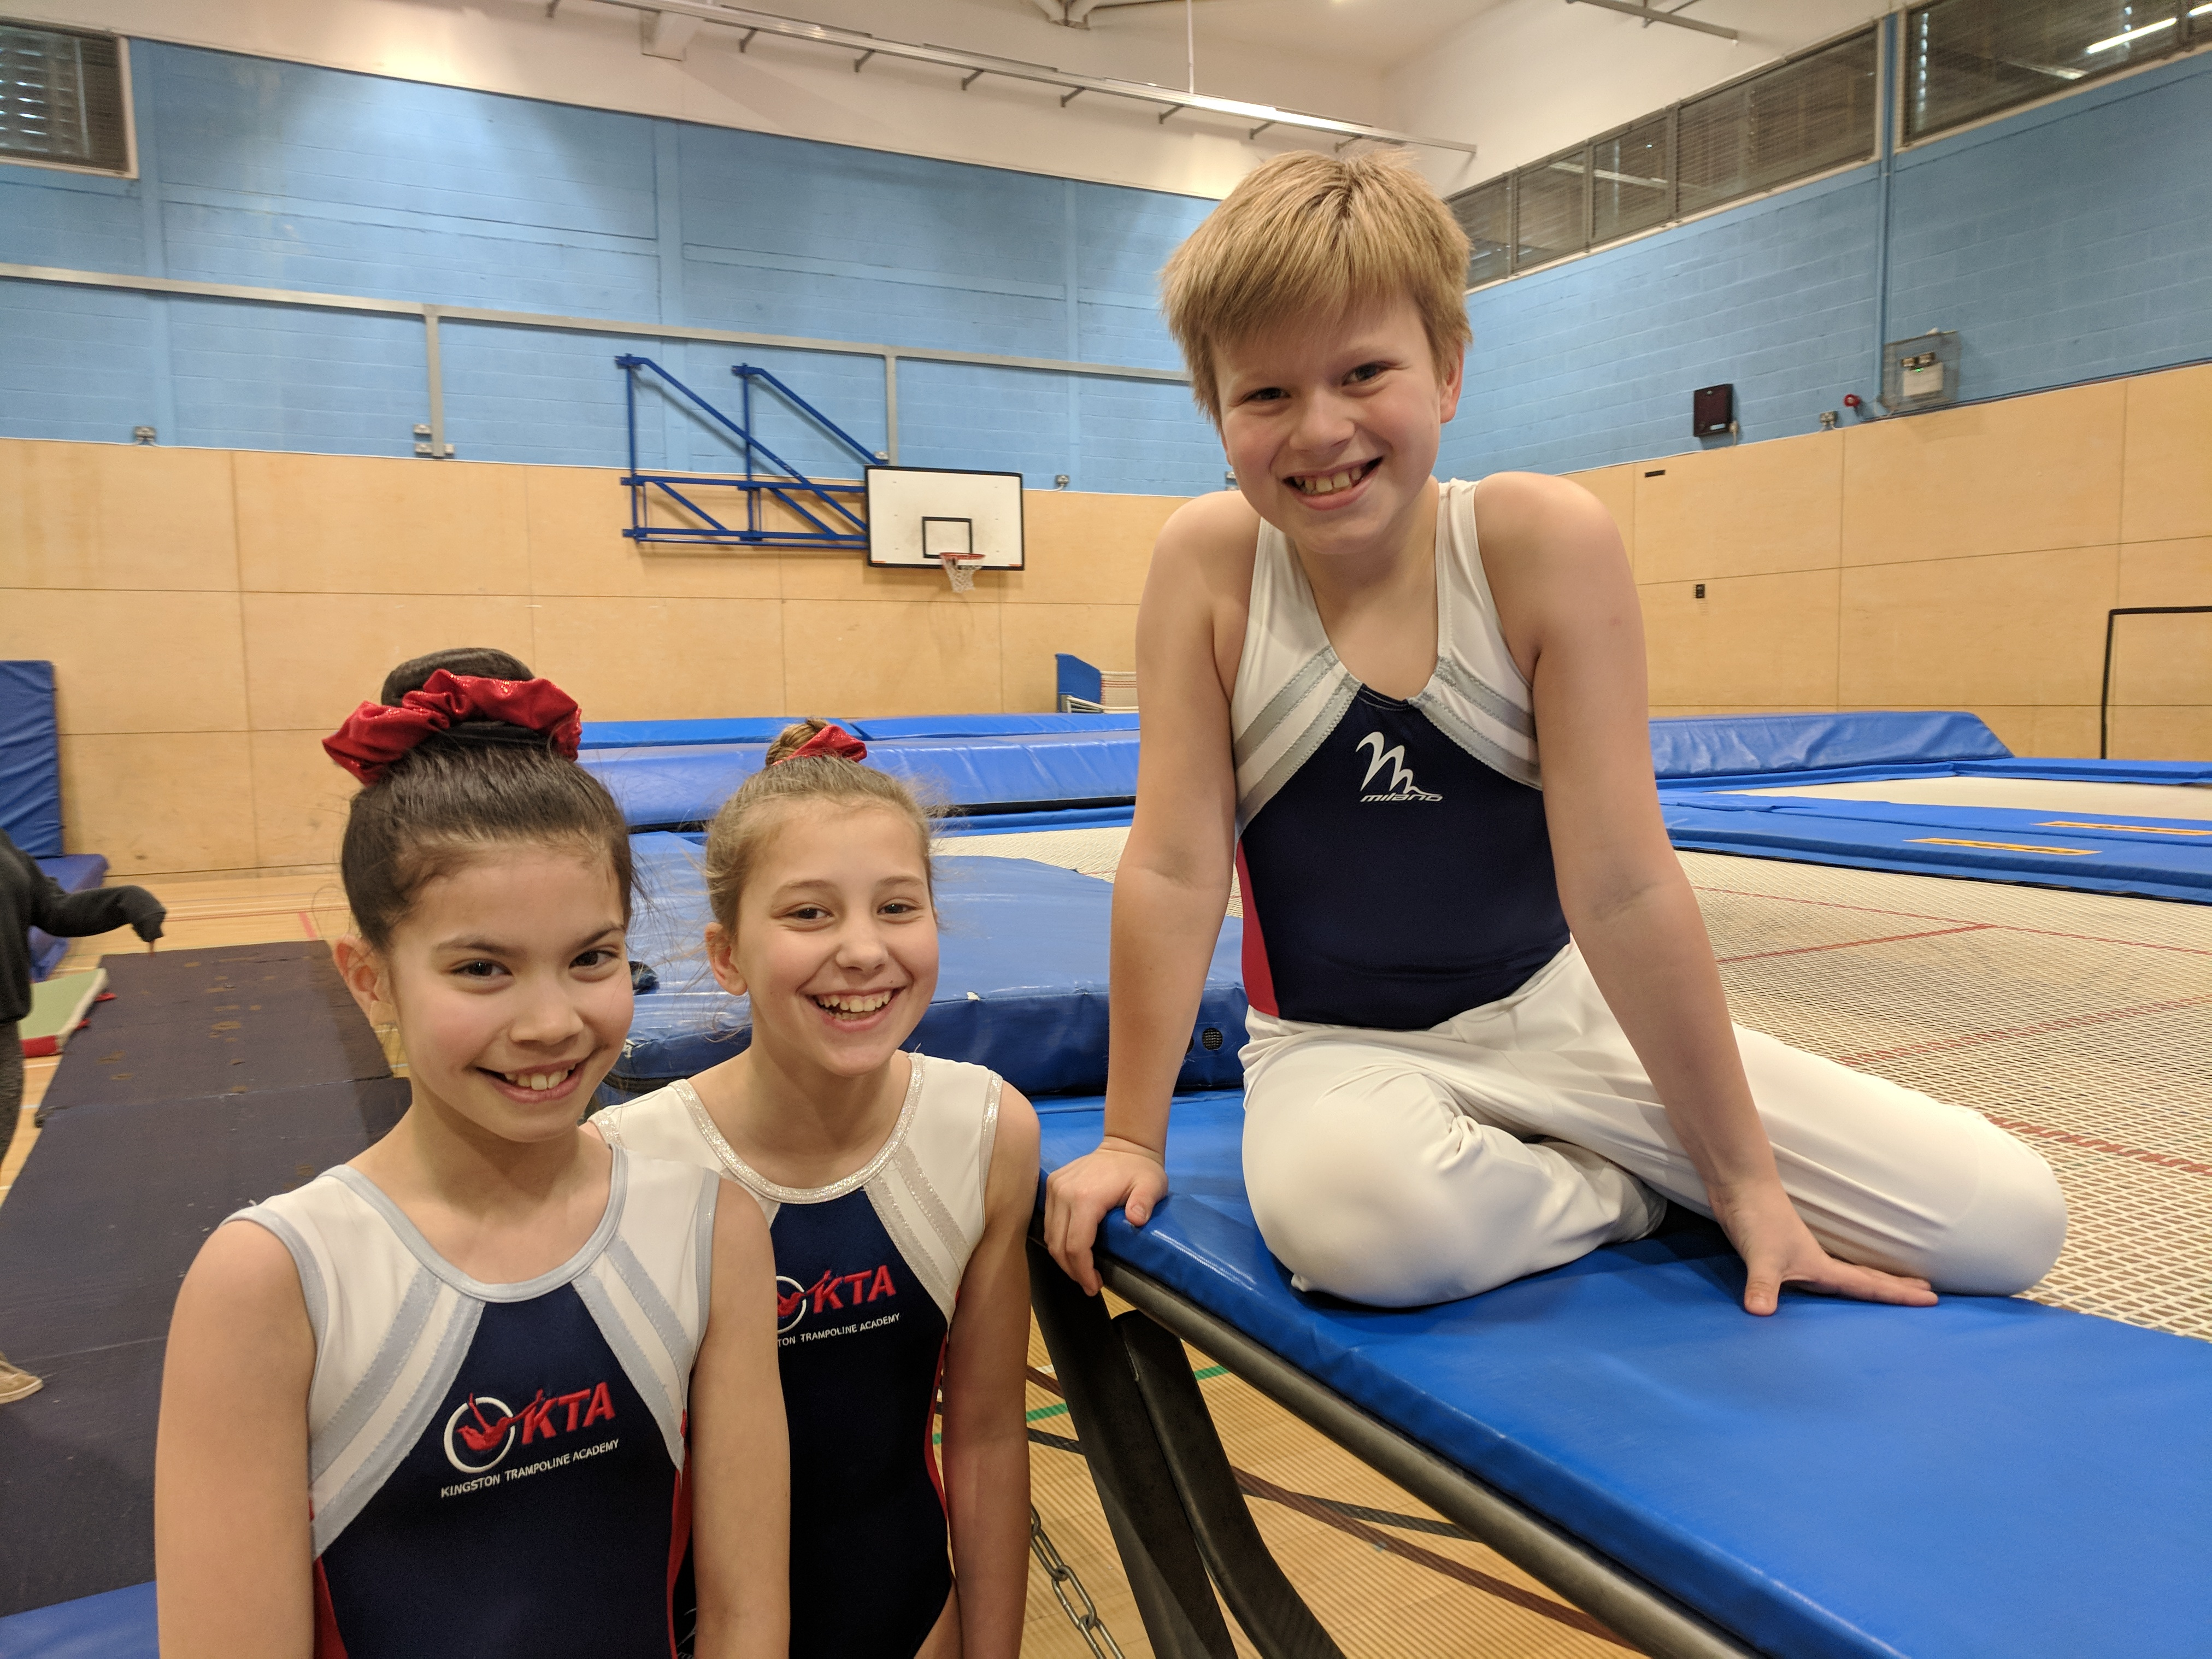 Jump for Fun trampoline lessons for 8-12 year olds at Kingston Trampoline Academy. ONe of the leading trampoline clubs in the UK.